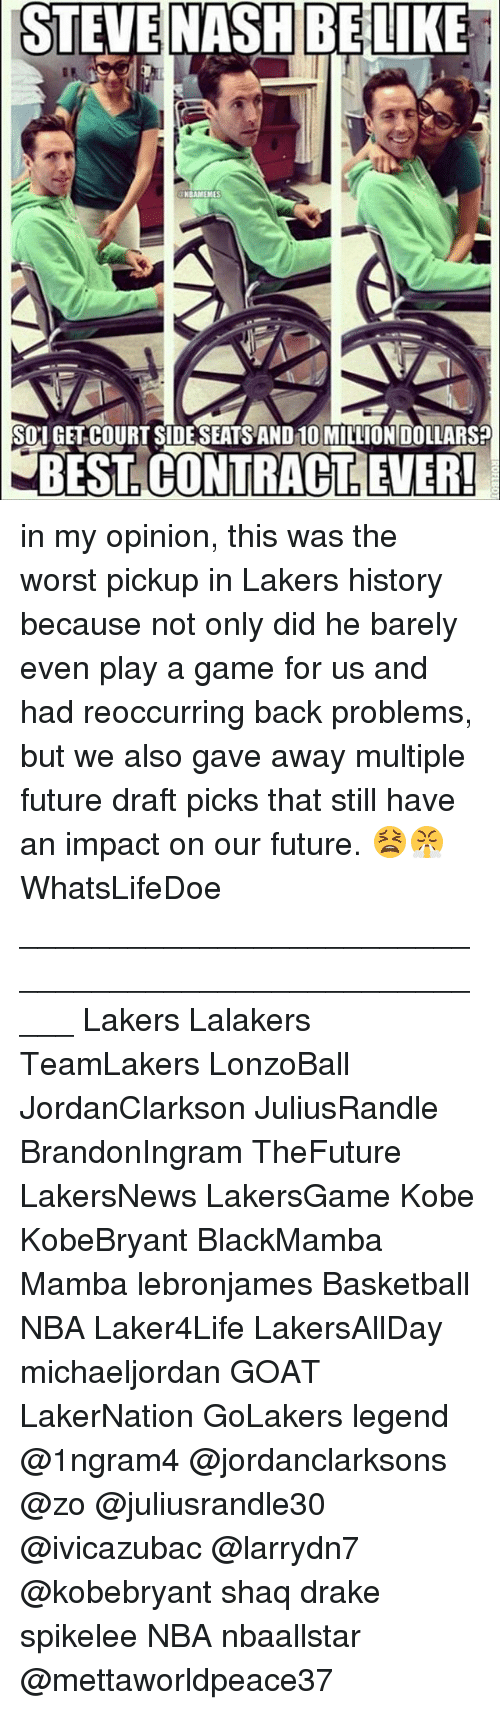 shaqs: STEVE  NASH BELIKE  NBAMEMES  SOI GET COURT SIDESEATS AND 10 MILLION DOLLARS?  BEST. CONTRACT, LEVER in my opinion, this was the worst pickup in Lakers history because not only did he barely even play a game for us and had reoccurring back problems, but we also gave away multiple future draft picks that still have an impact on our future. 😫😤 WhatsLifeDoe _____________________________________________________ Lakers Lalakers TeamLakers LonzoBall JordanClarkson JuliusRandle BrandonIngram TheFuture LakersNews LakersGame Kobe KobeBryant BlackMamba Mamba lebronjames Basketball NBA Laker4Life LakersAllDay michaeljordan GOAT LakerNation GoLakers legend @1ngram4 @jordanclarksons @zo @juliusrandle30 @ivicazubac @larrydn7 @kobebryant shaq drake spikelee NBA nbaallstar @mettaworldpeace37